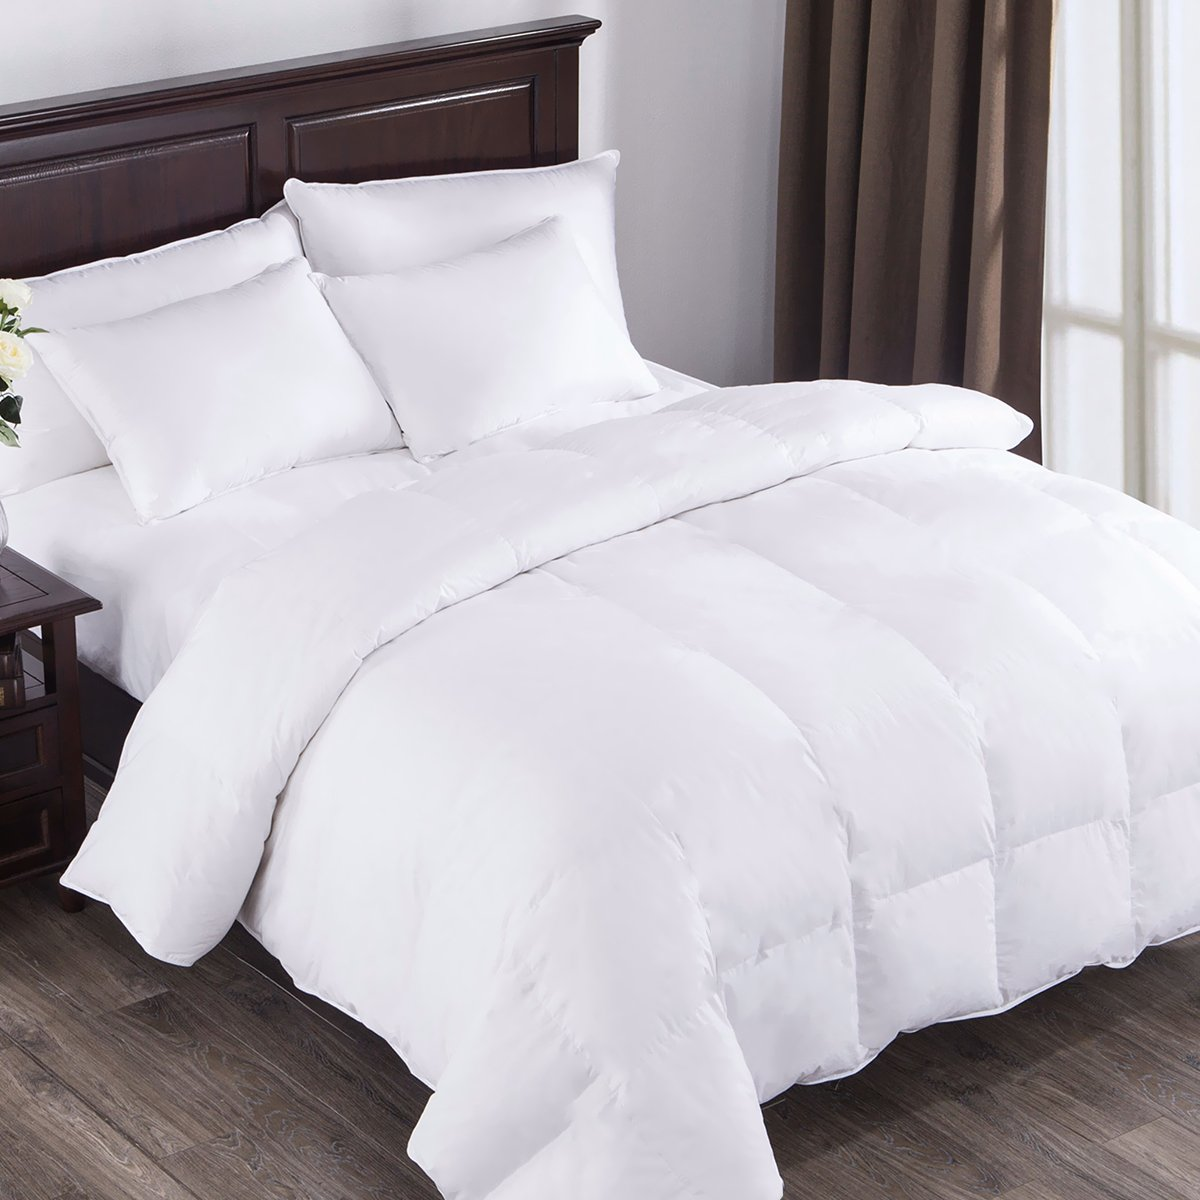 PUREDOWN White Down Comforter, Year Round Use, 100%Cotton, 600 Fill Power, 233 Thread Count , King Size, White